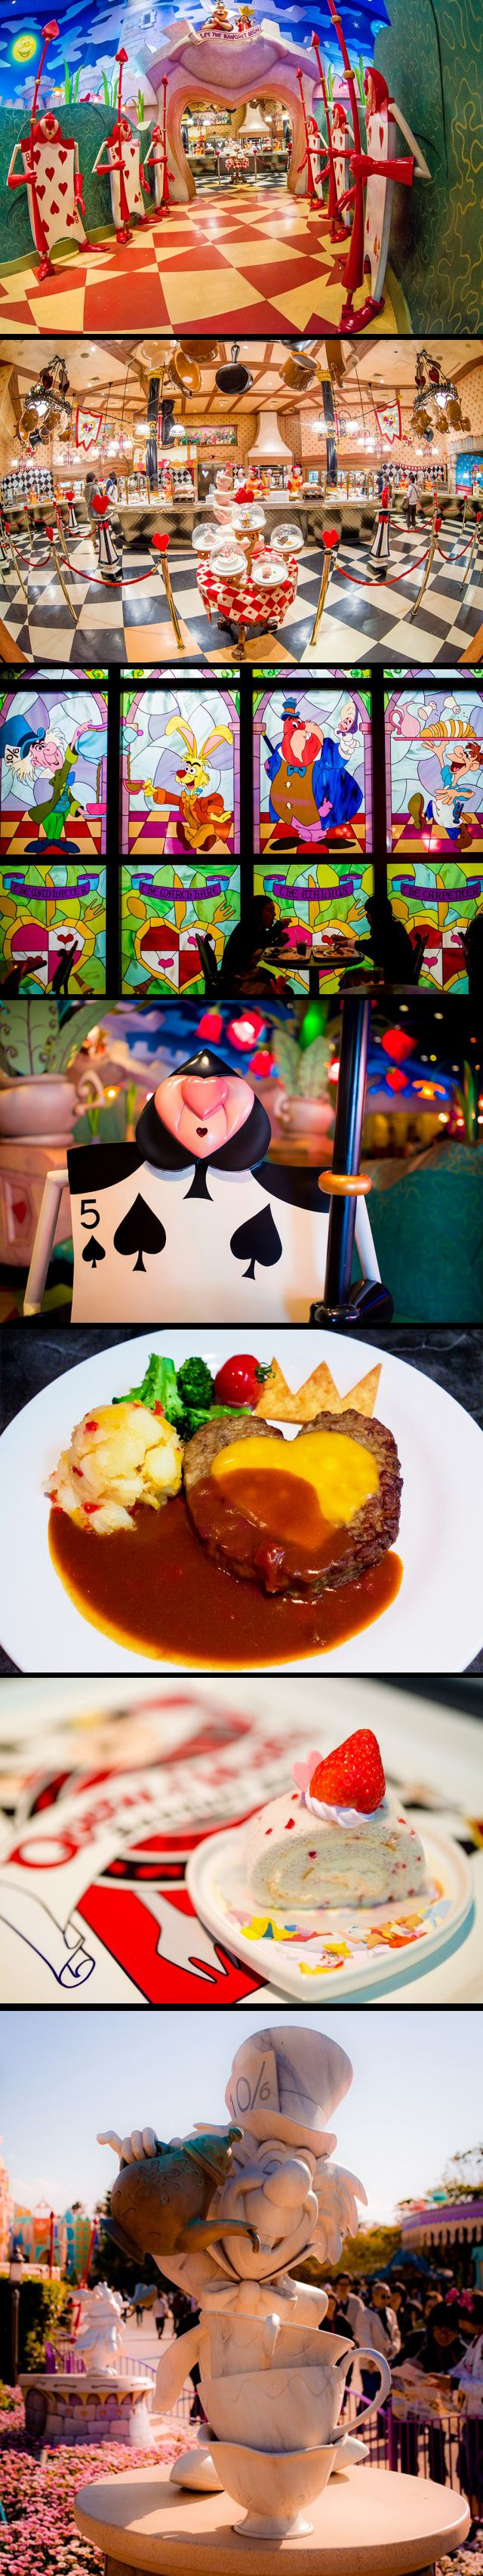 Hearts Banquet Hall, one of the coolest restaurants in Tokyo Disneyland. Alice in Wonderland themed.